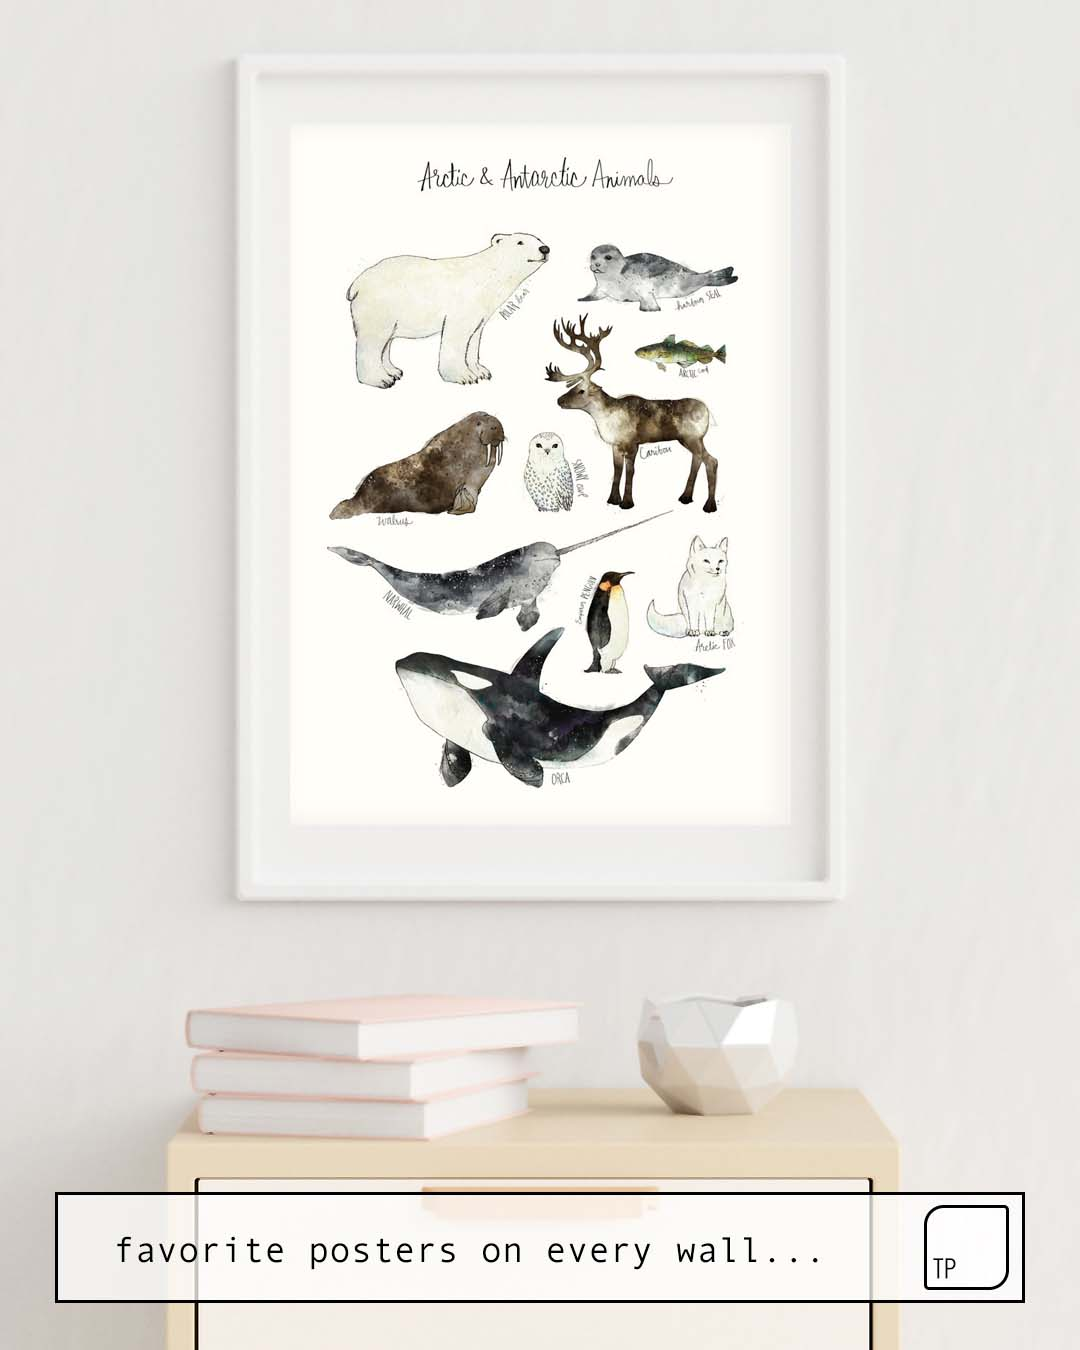 Affiche | ARCTIC & ANTARCTIC ANIMALS par Amy Hamilton